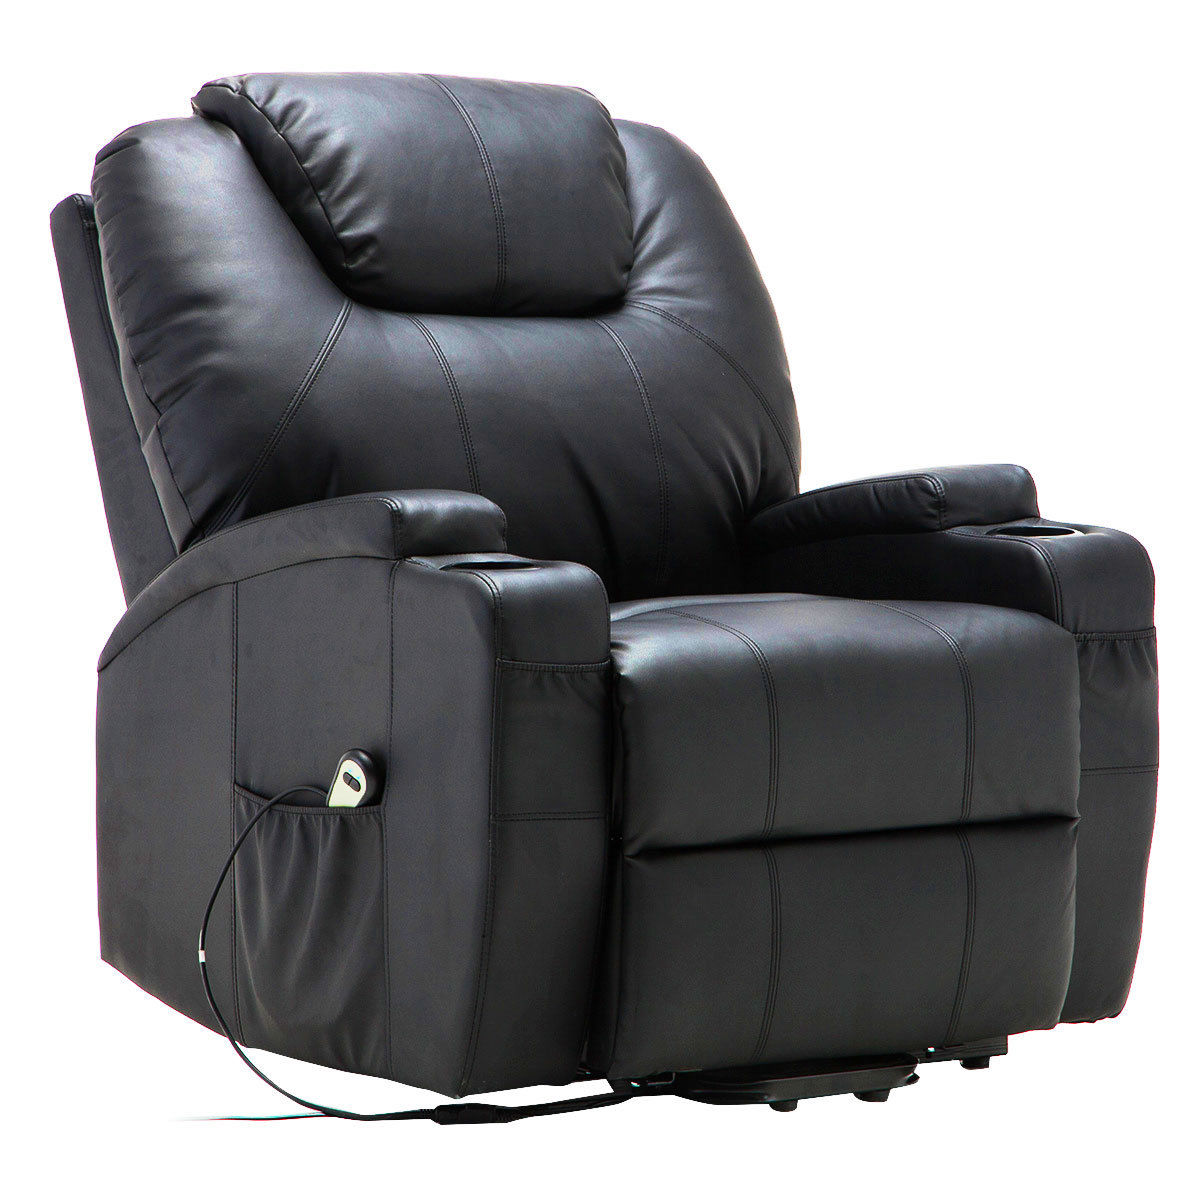 recliner massage chair 1930s rocking costway electric lift power heated sofa lounge w remote control walmart com